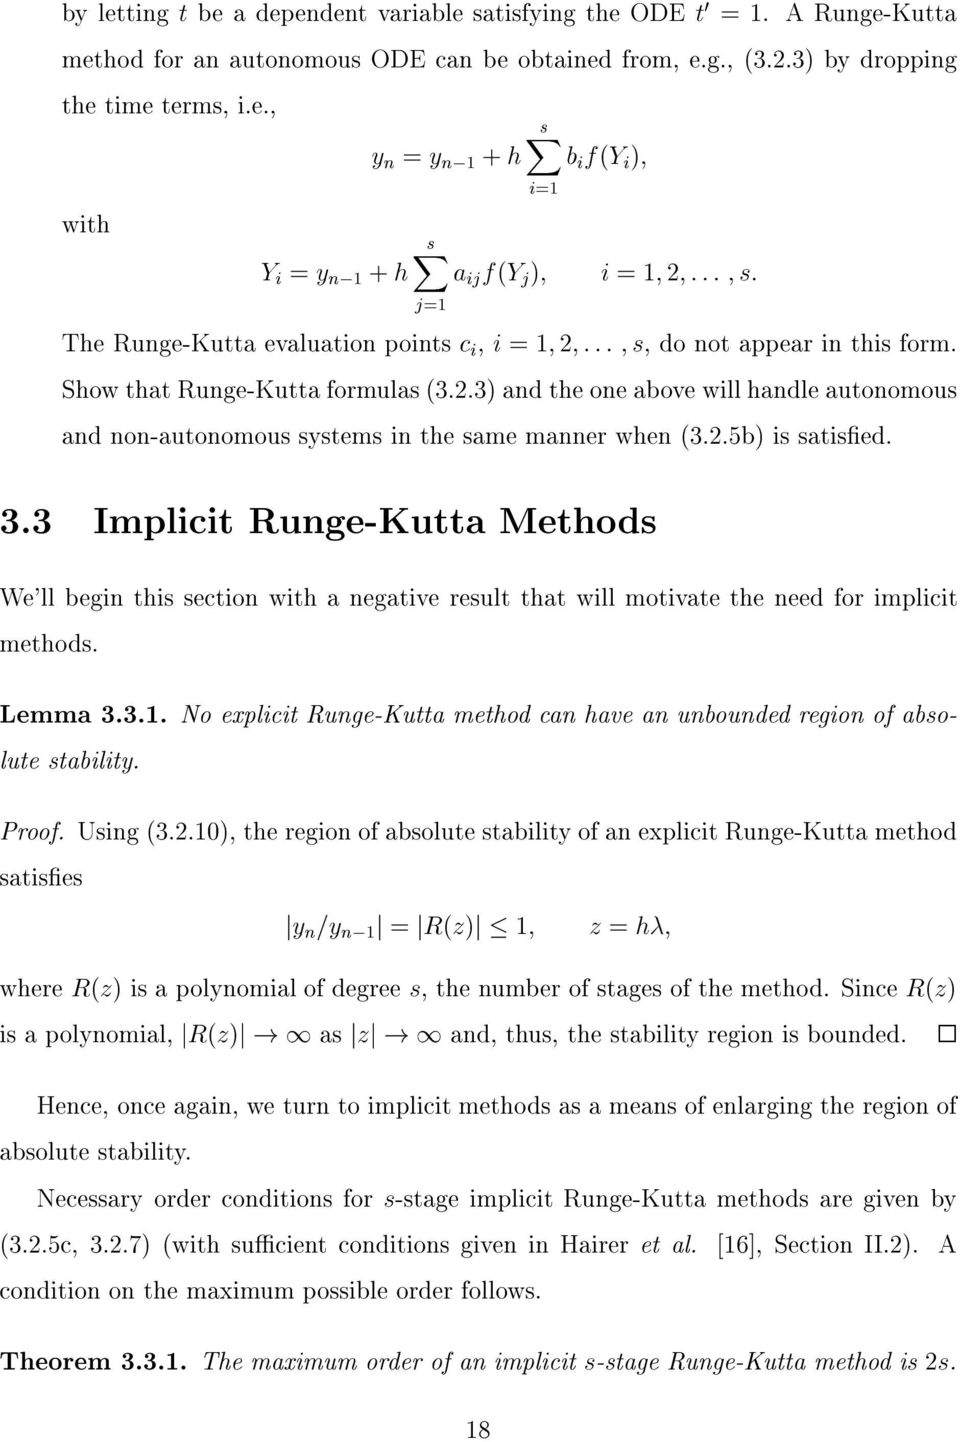 3 Implicit Runge-Kutta Methods We'll begin this section with a negative result that will motivate the need for implicit methods. Lemma 3.3.. No explicit Runge-Kutta method can have an unbounded region of absolute stability.